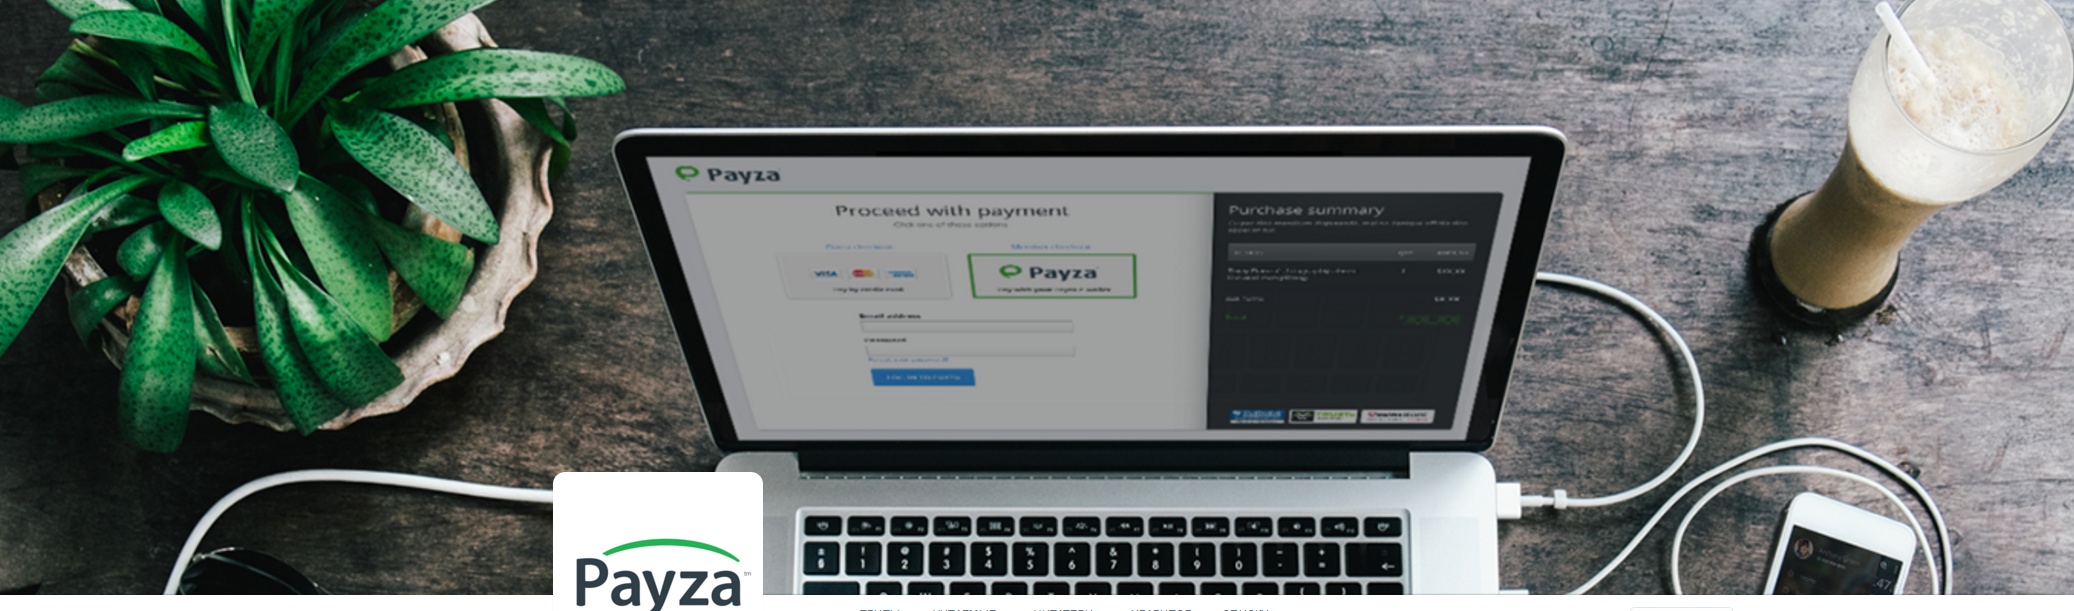 Earn money with Payza!